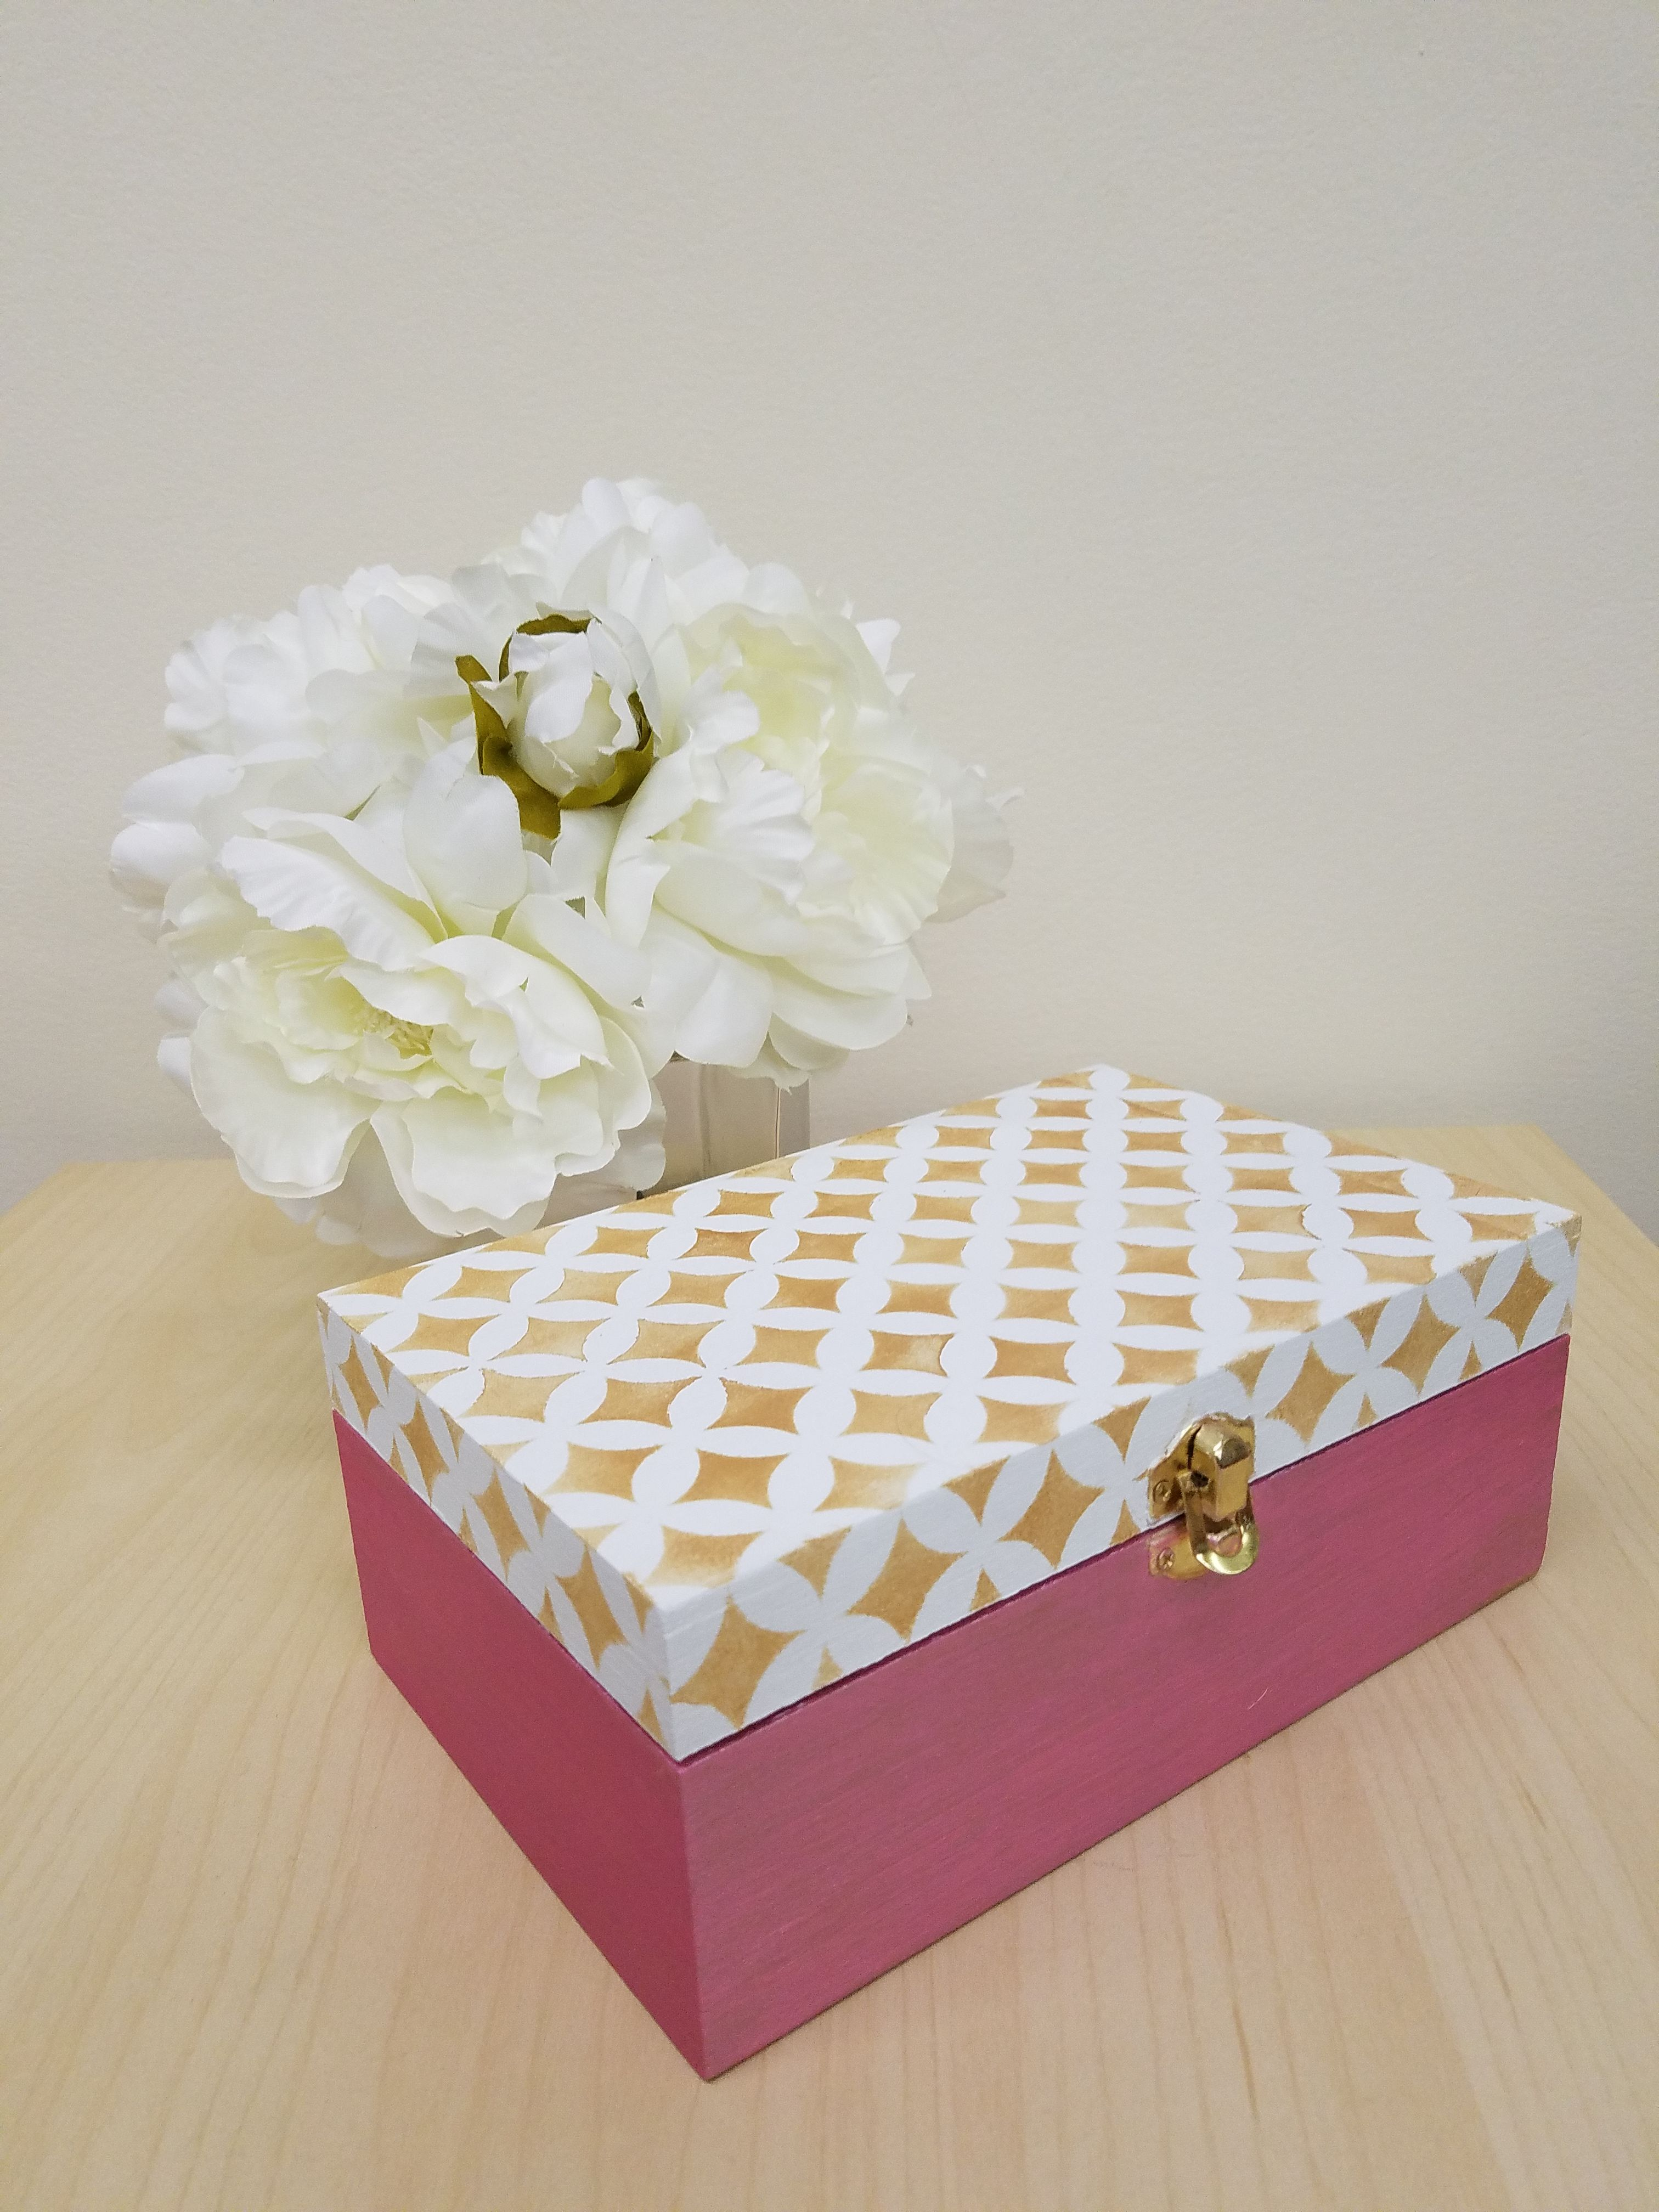 Learn how to craft a DIY wooden jewelry box ($5.99 from Michaels ...